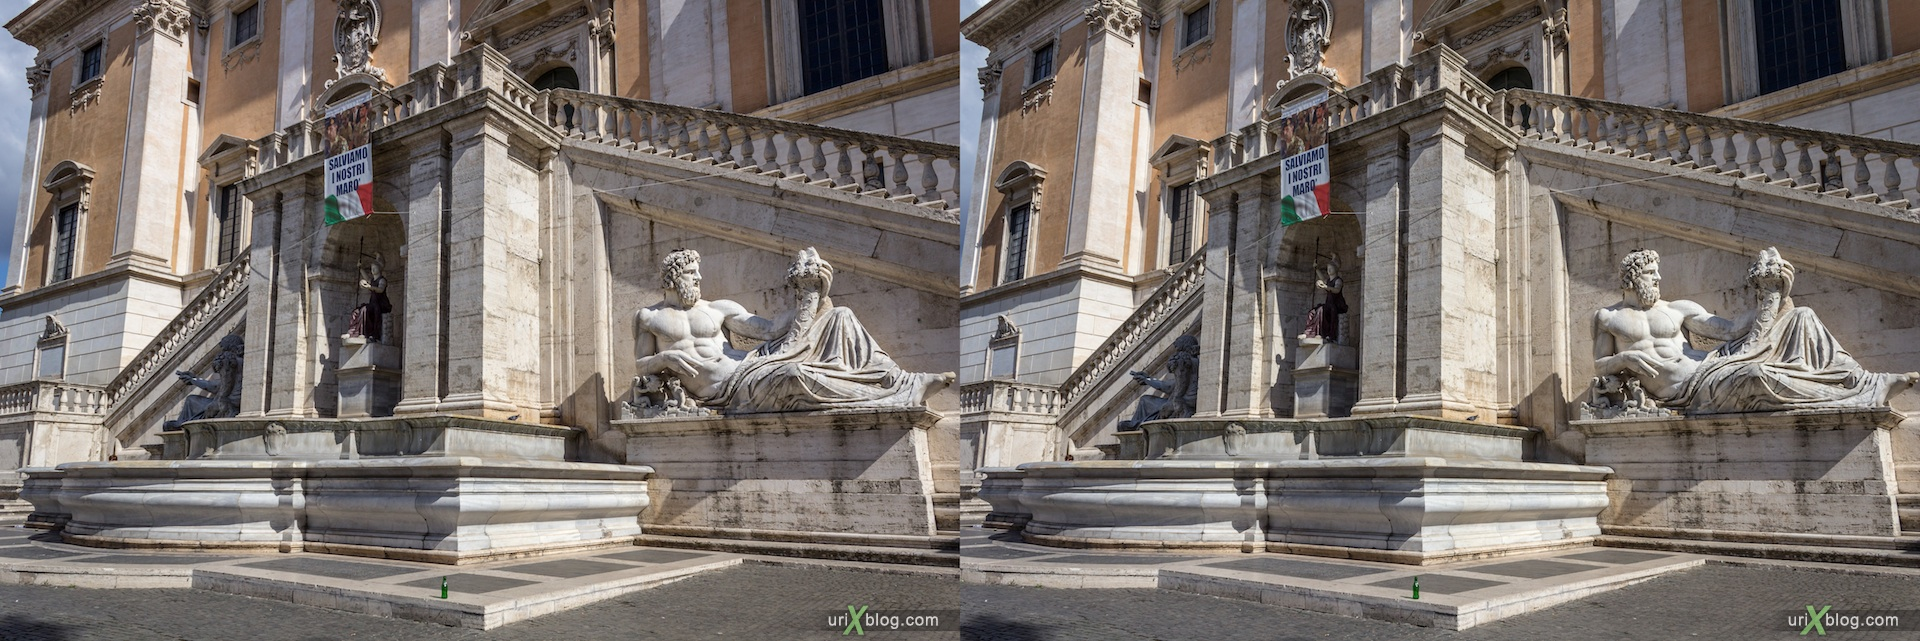 2012, fountain, Capitoline Square, Rome, Italy, 3D, stereo pair, cross-eyed, crossview, cross view stereo pair